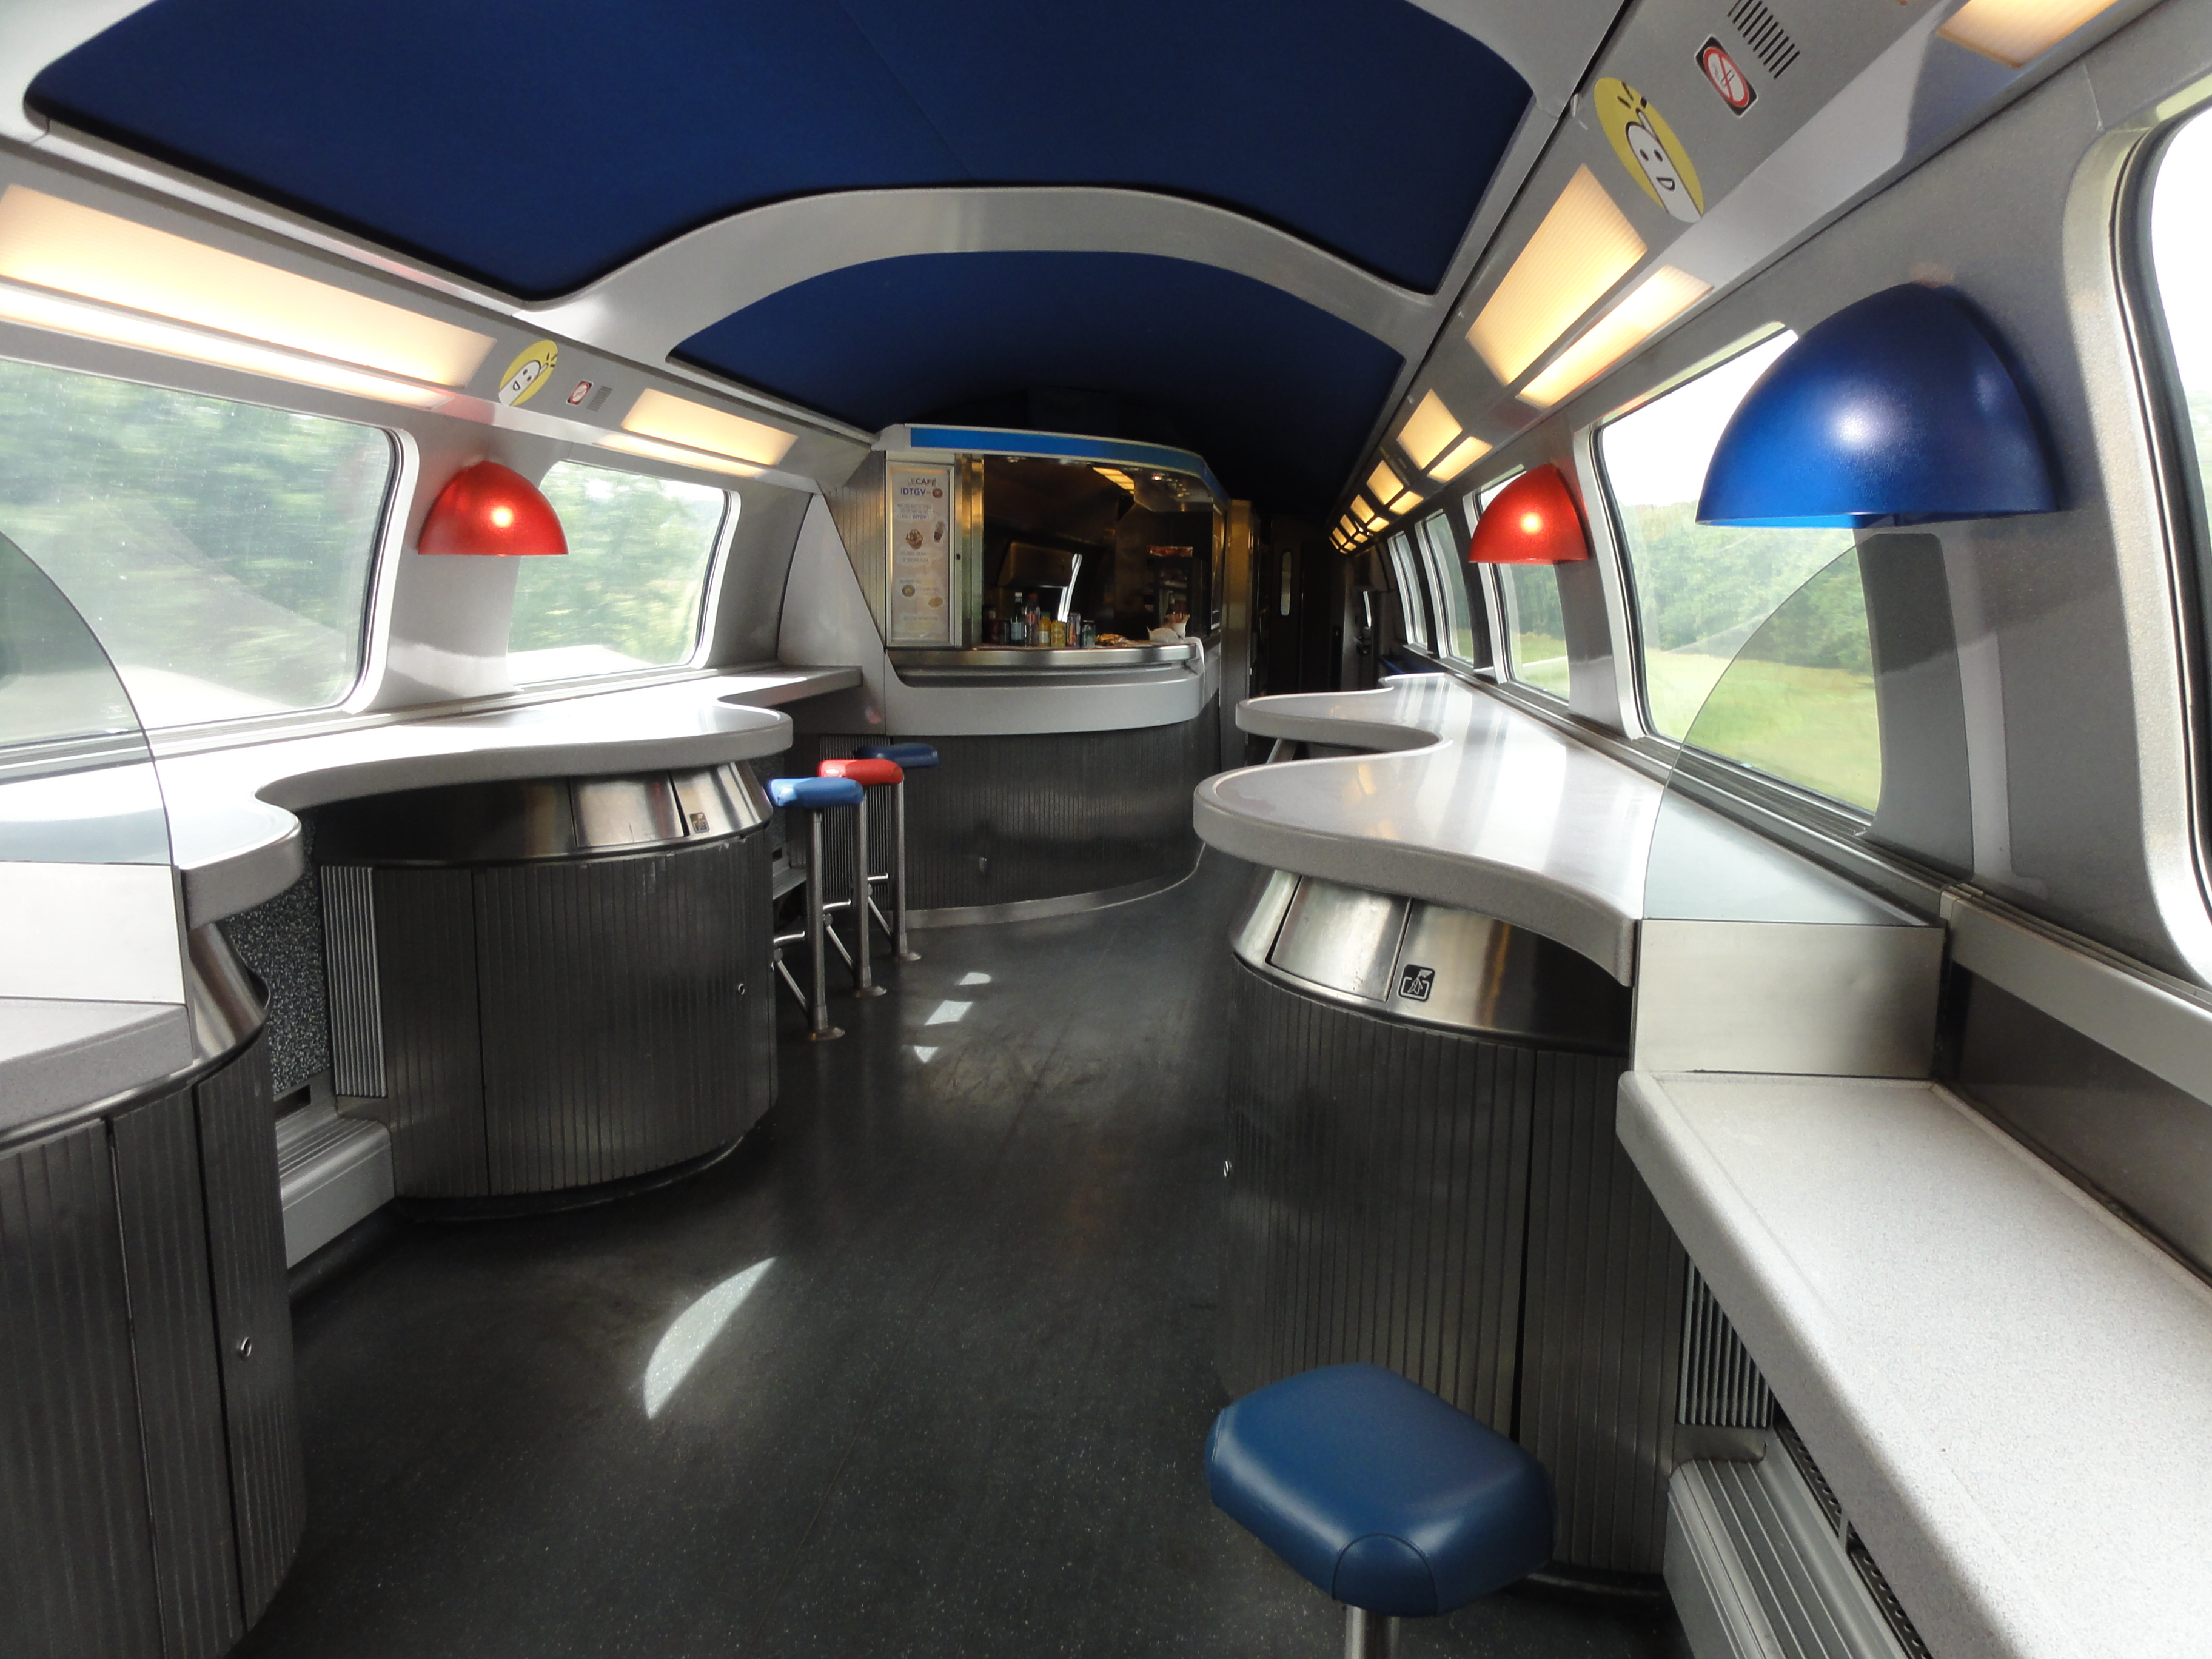 Design Interieur Tgv File Tgv Duplex Bar 20150808 Jpg Wikimedia Commons